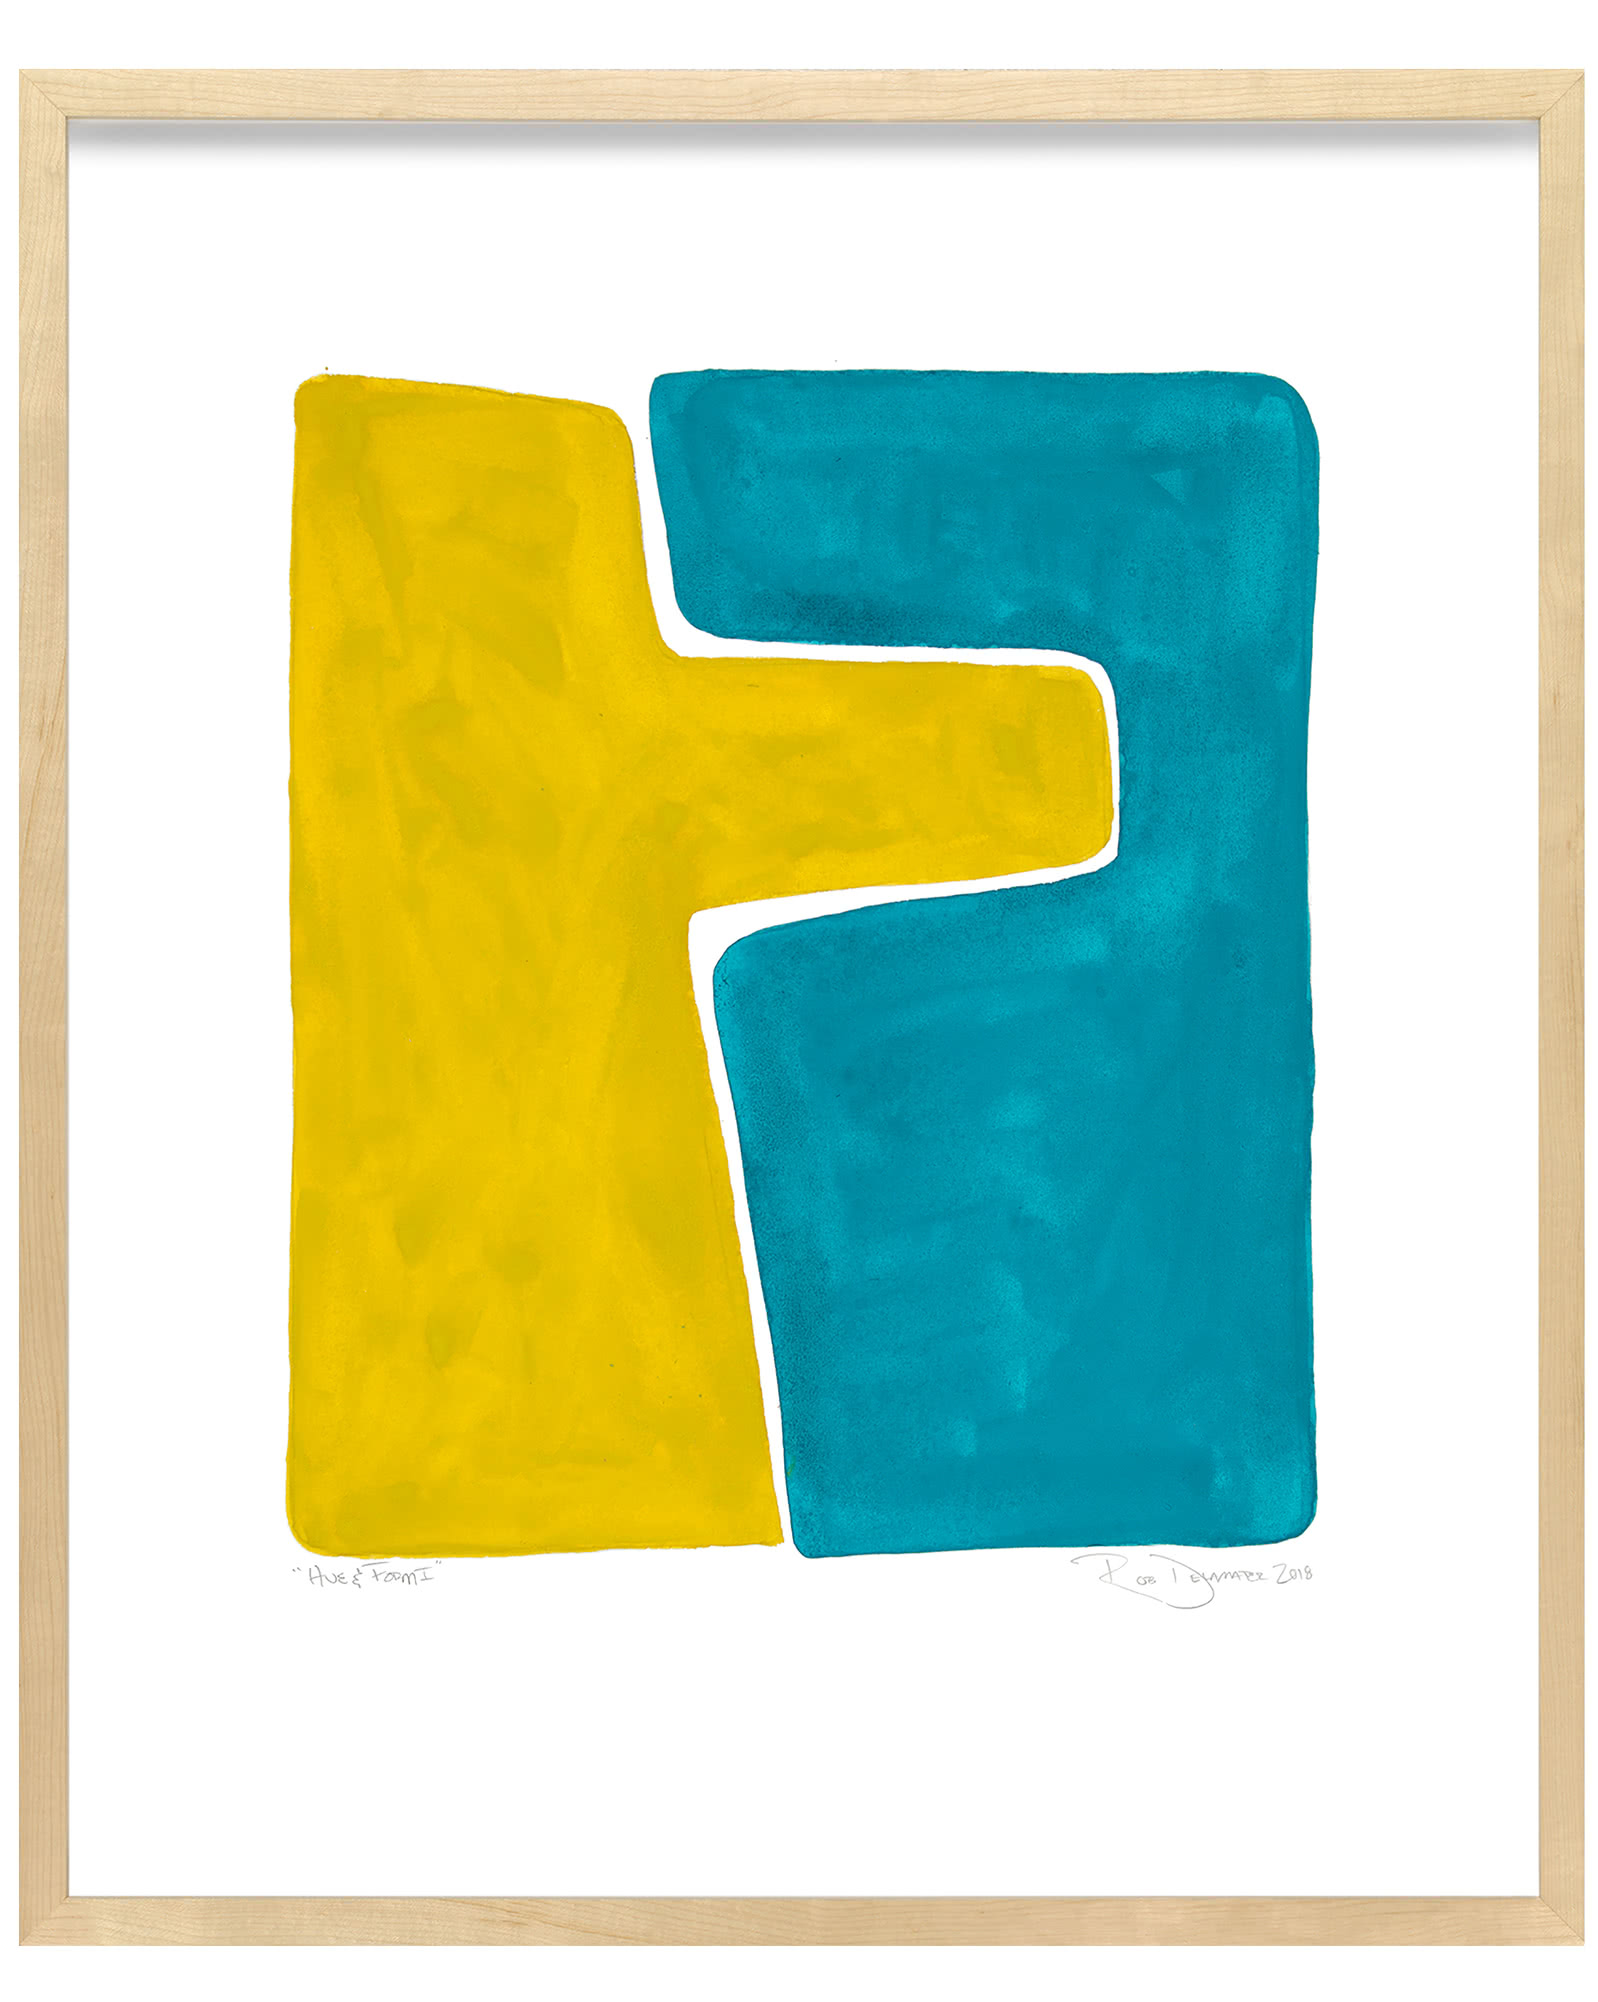 """""""Hue & Form"""" by Rob Delamater,"""